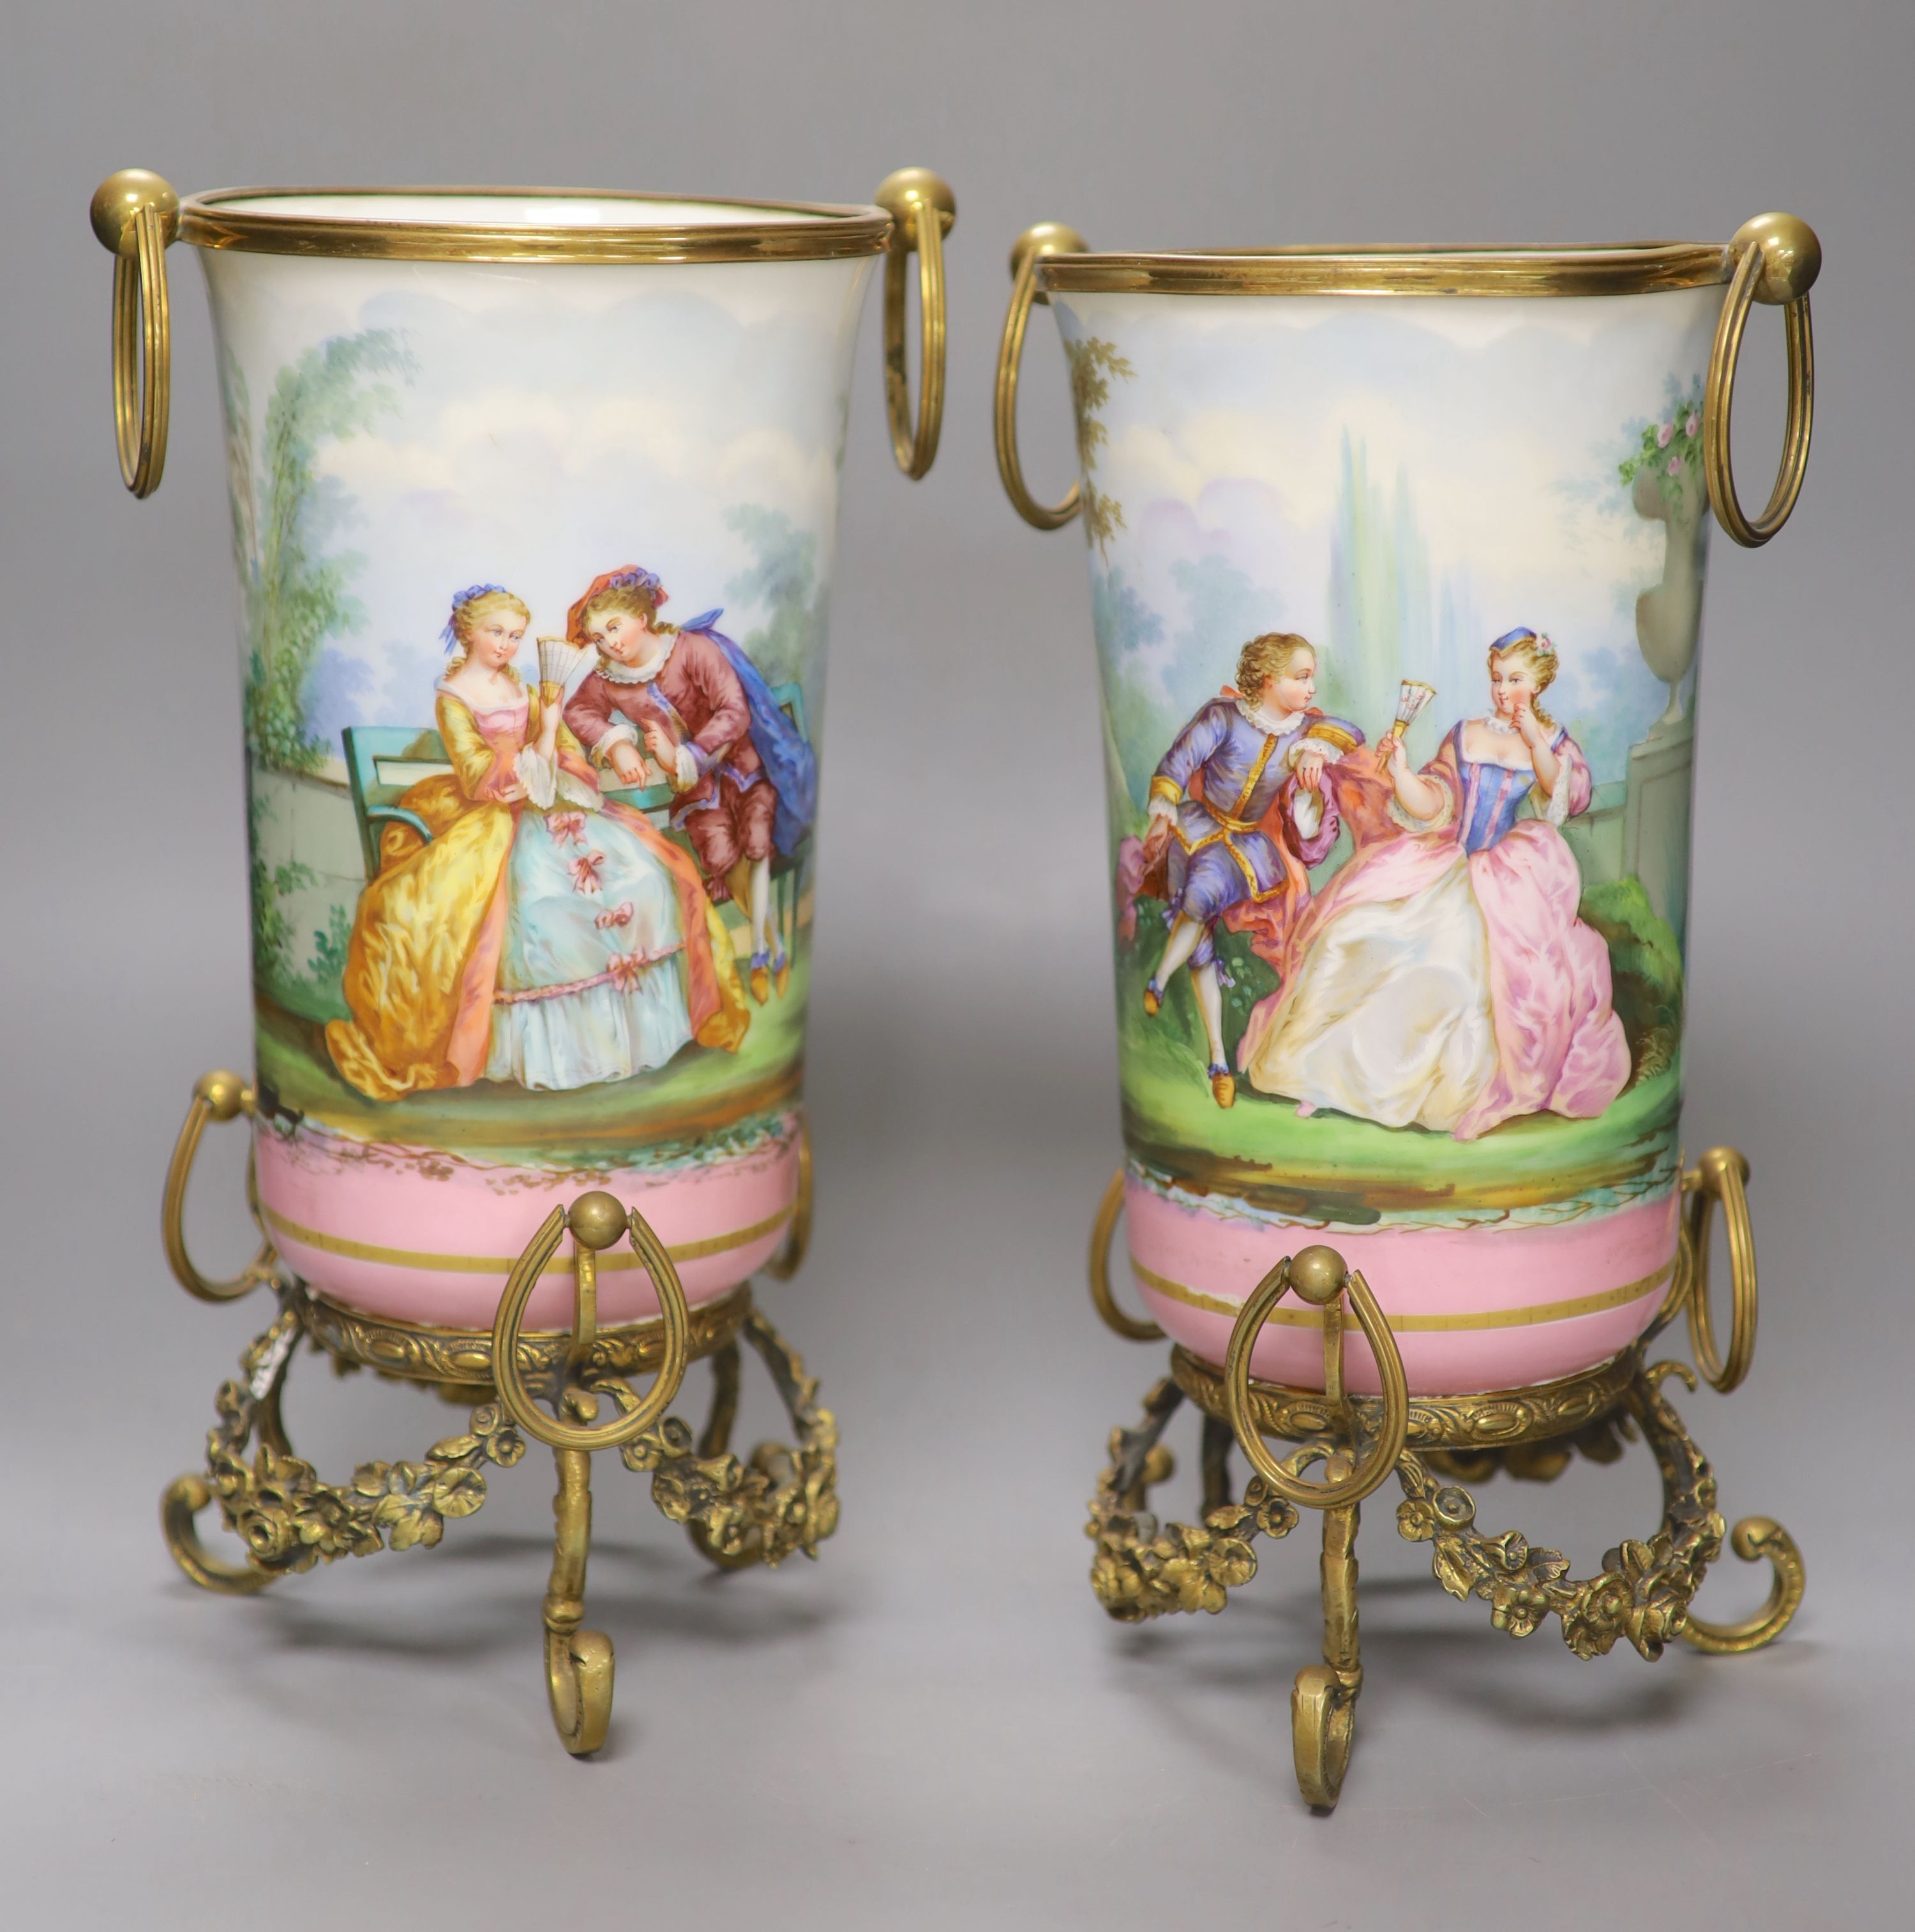 A pair of late 19th century Paris porcelain and gilt metal mounted vases, height 33cmCONDITION: Good